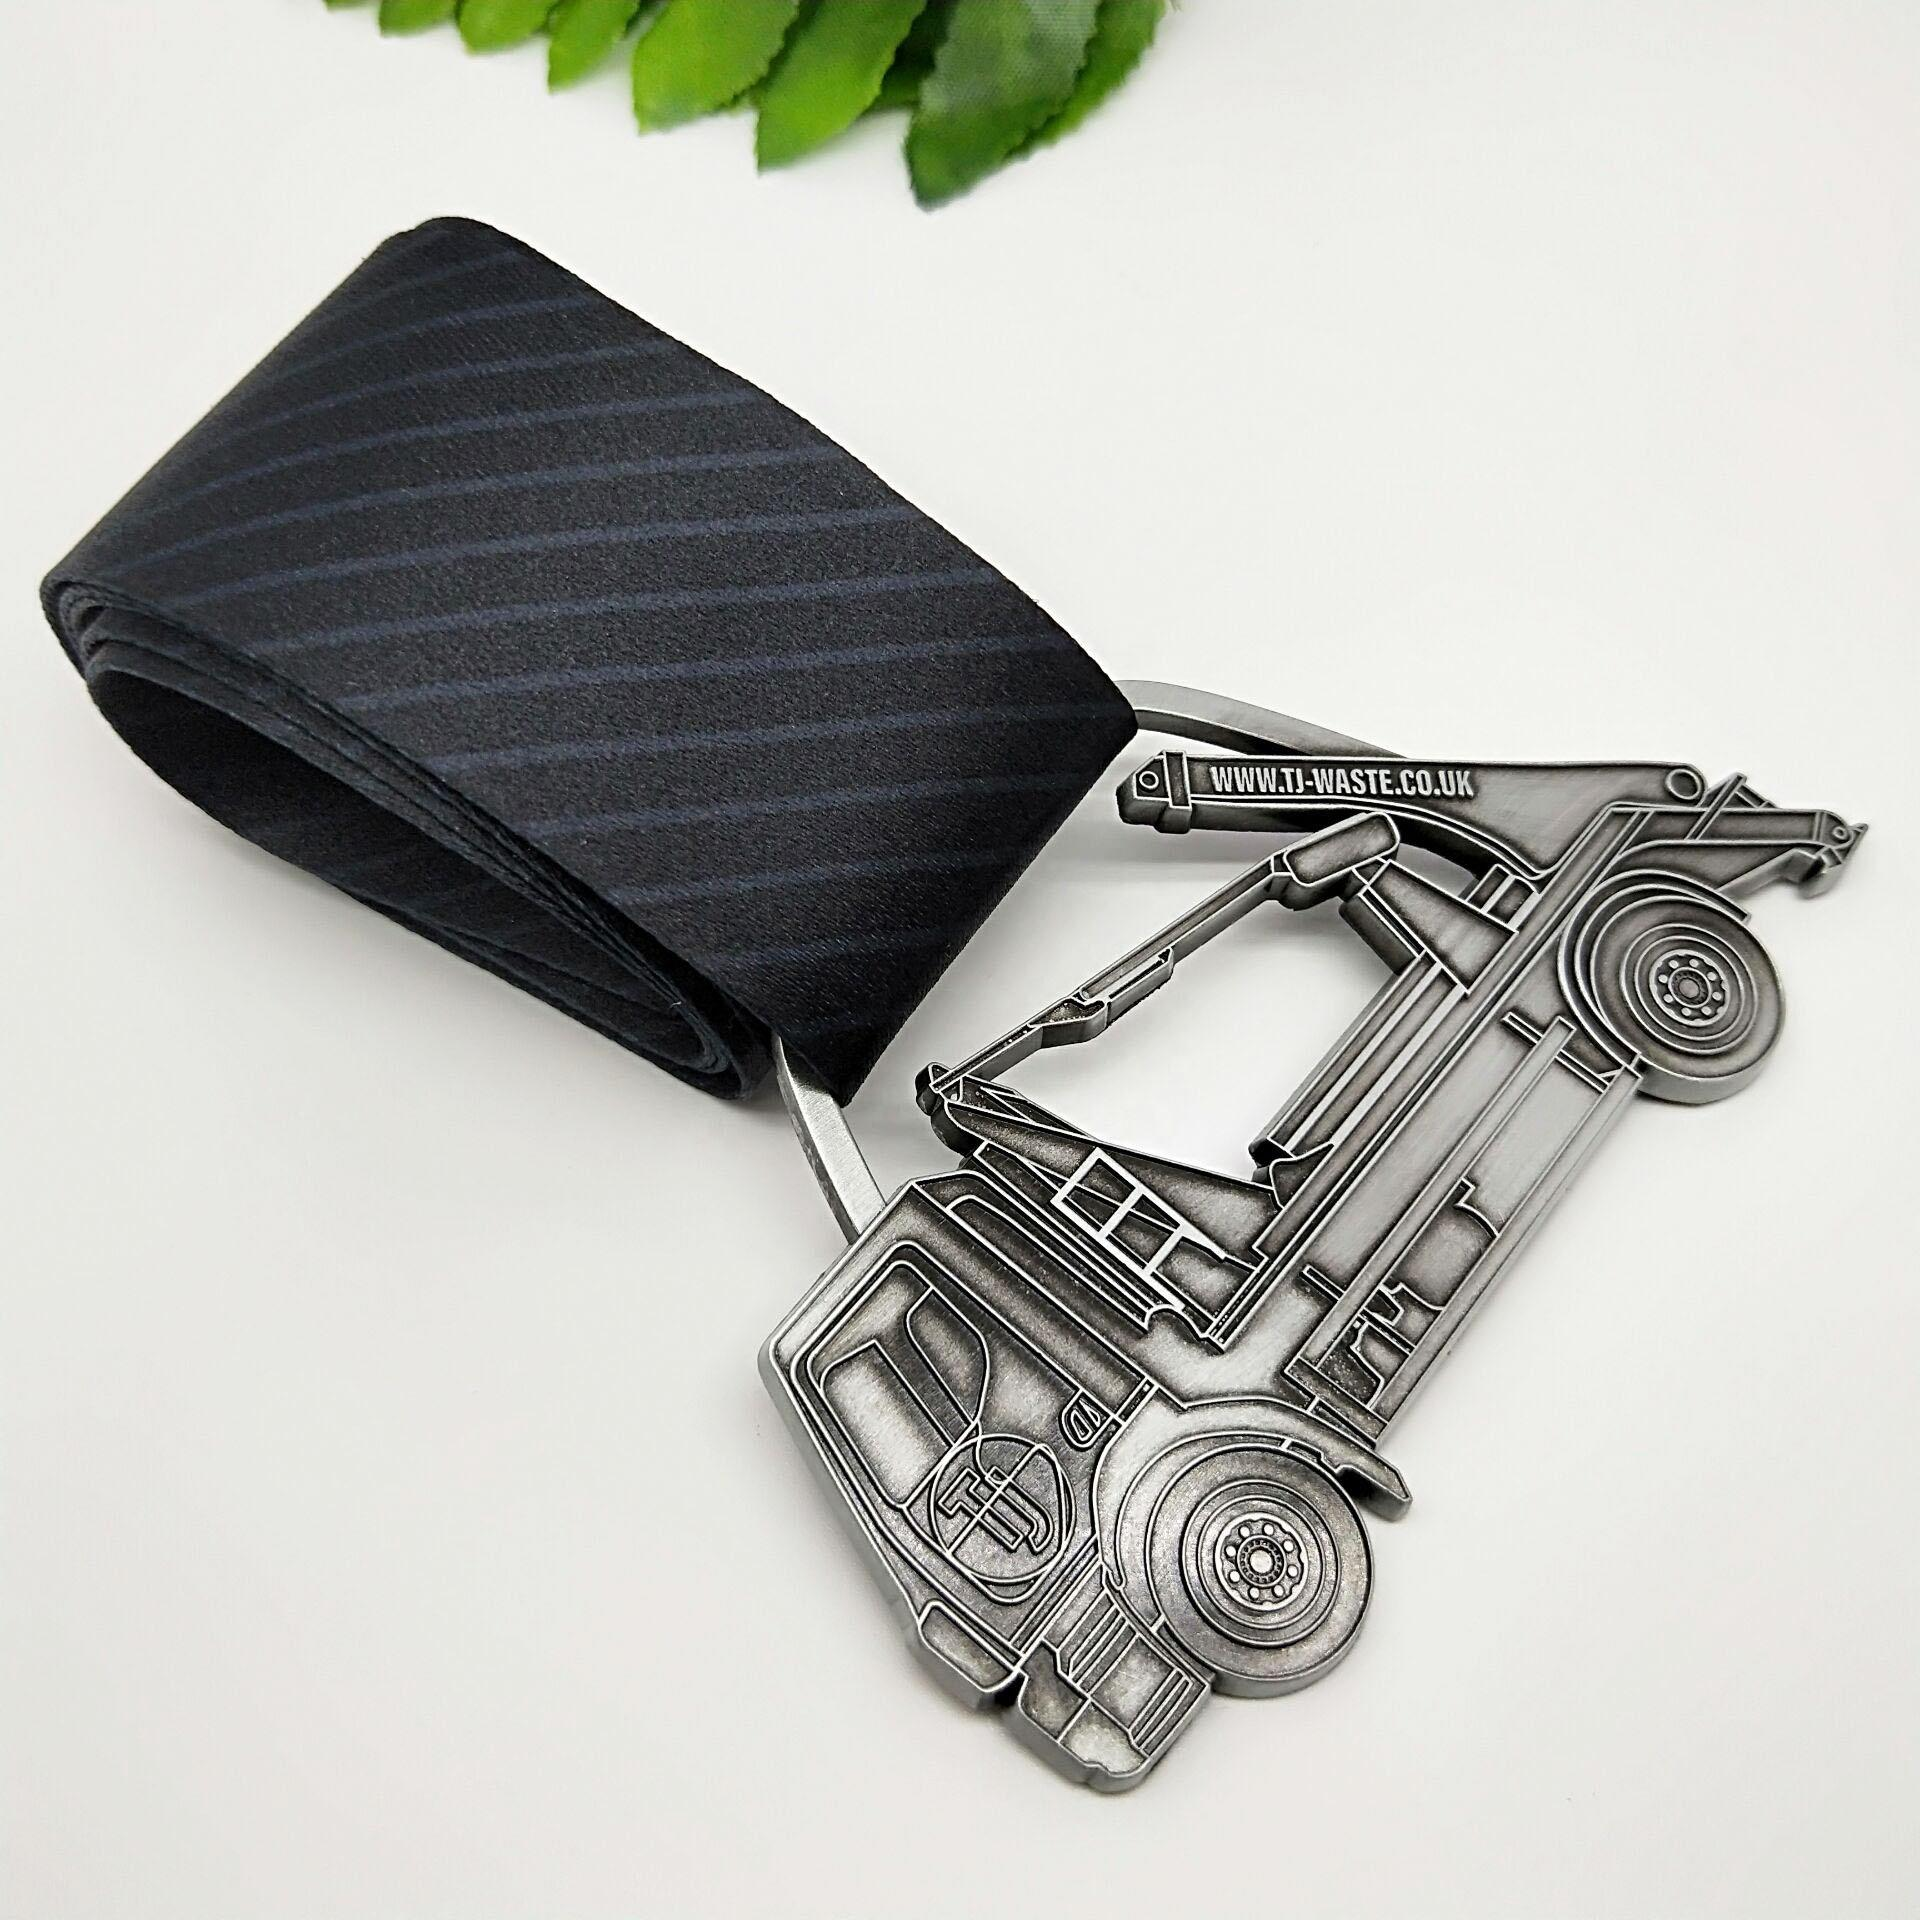 Fast delivery 5000m Timing challenge heart logo antique silver sports run achievement medals